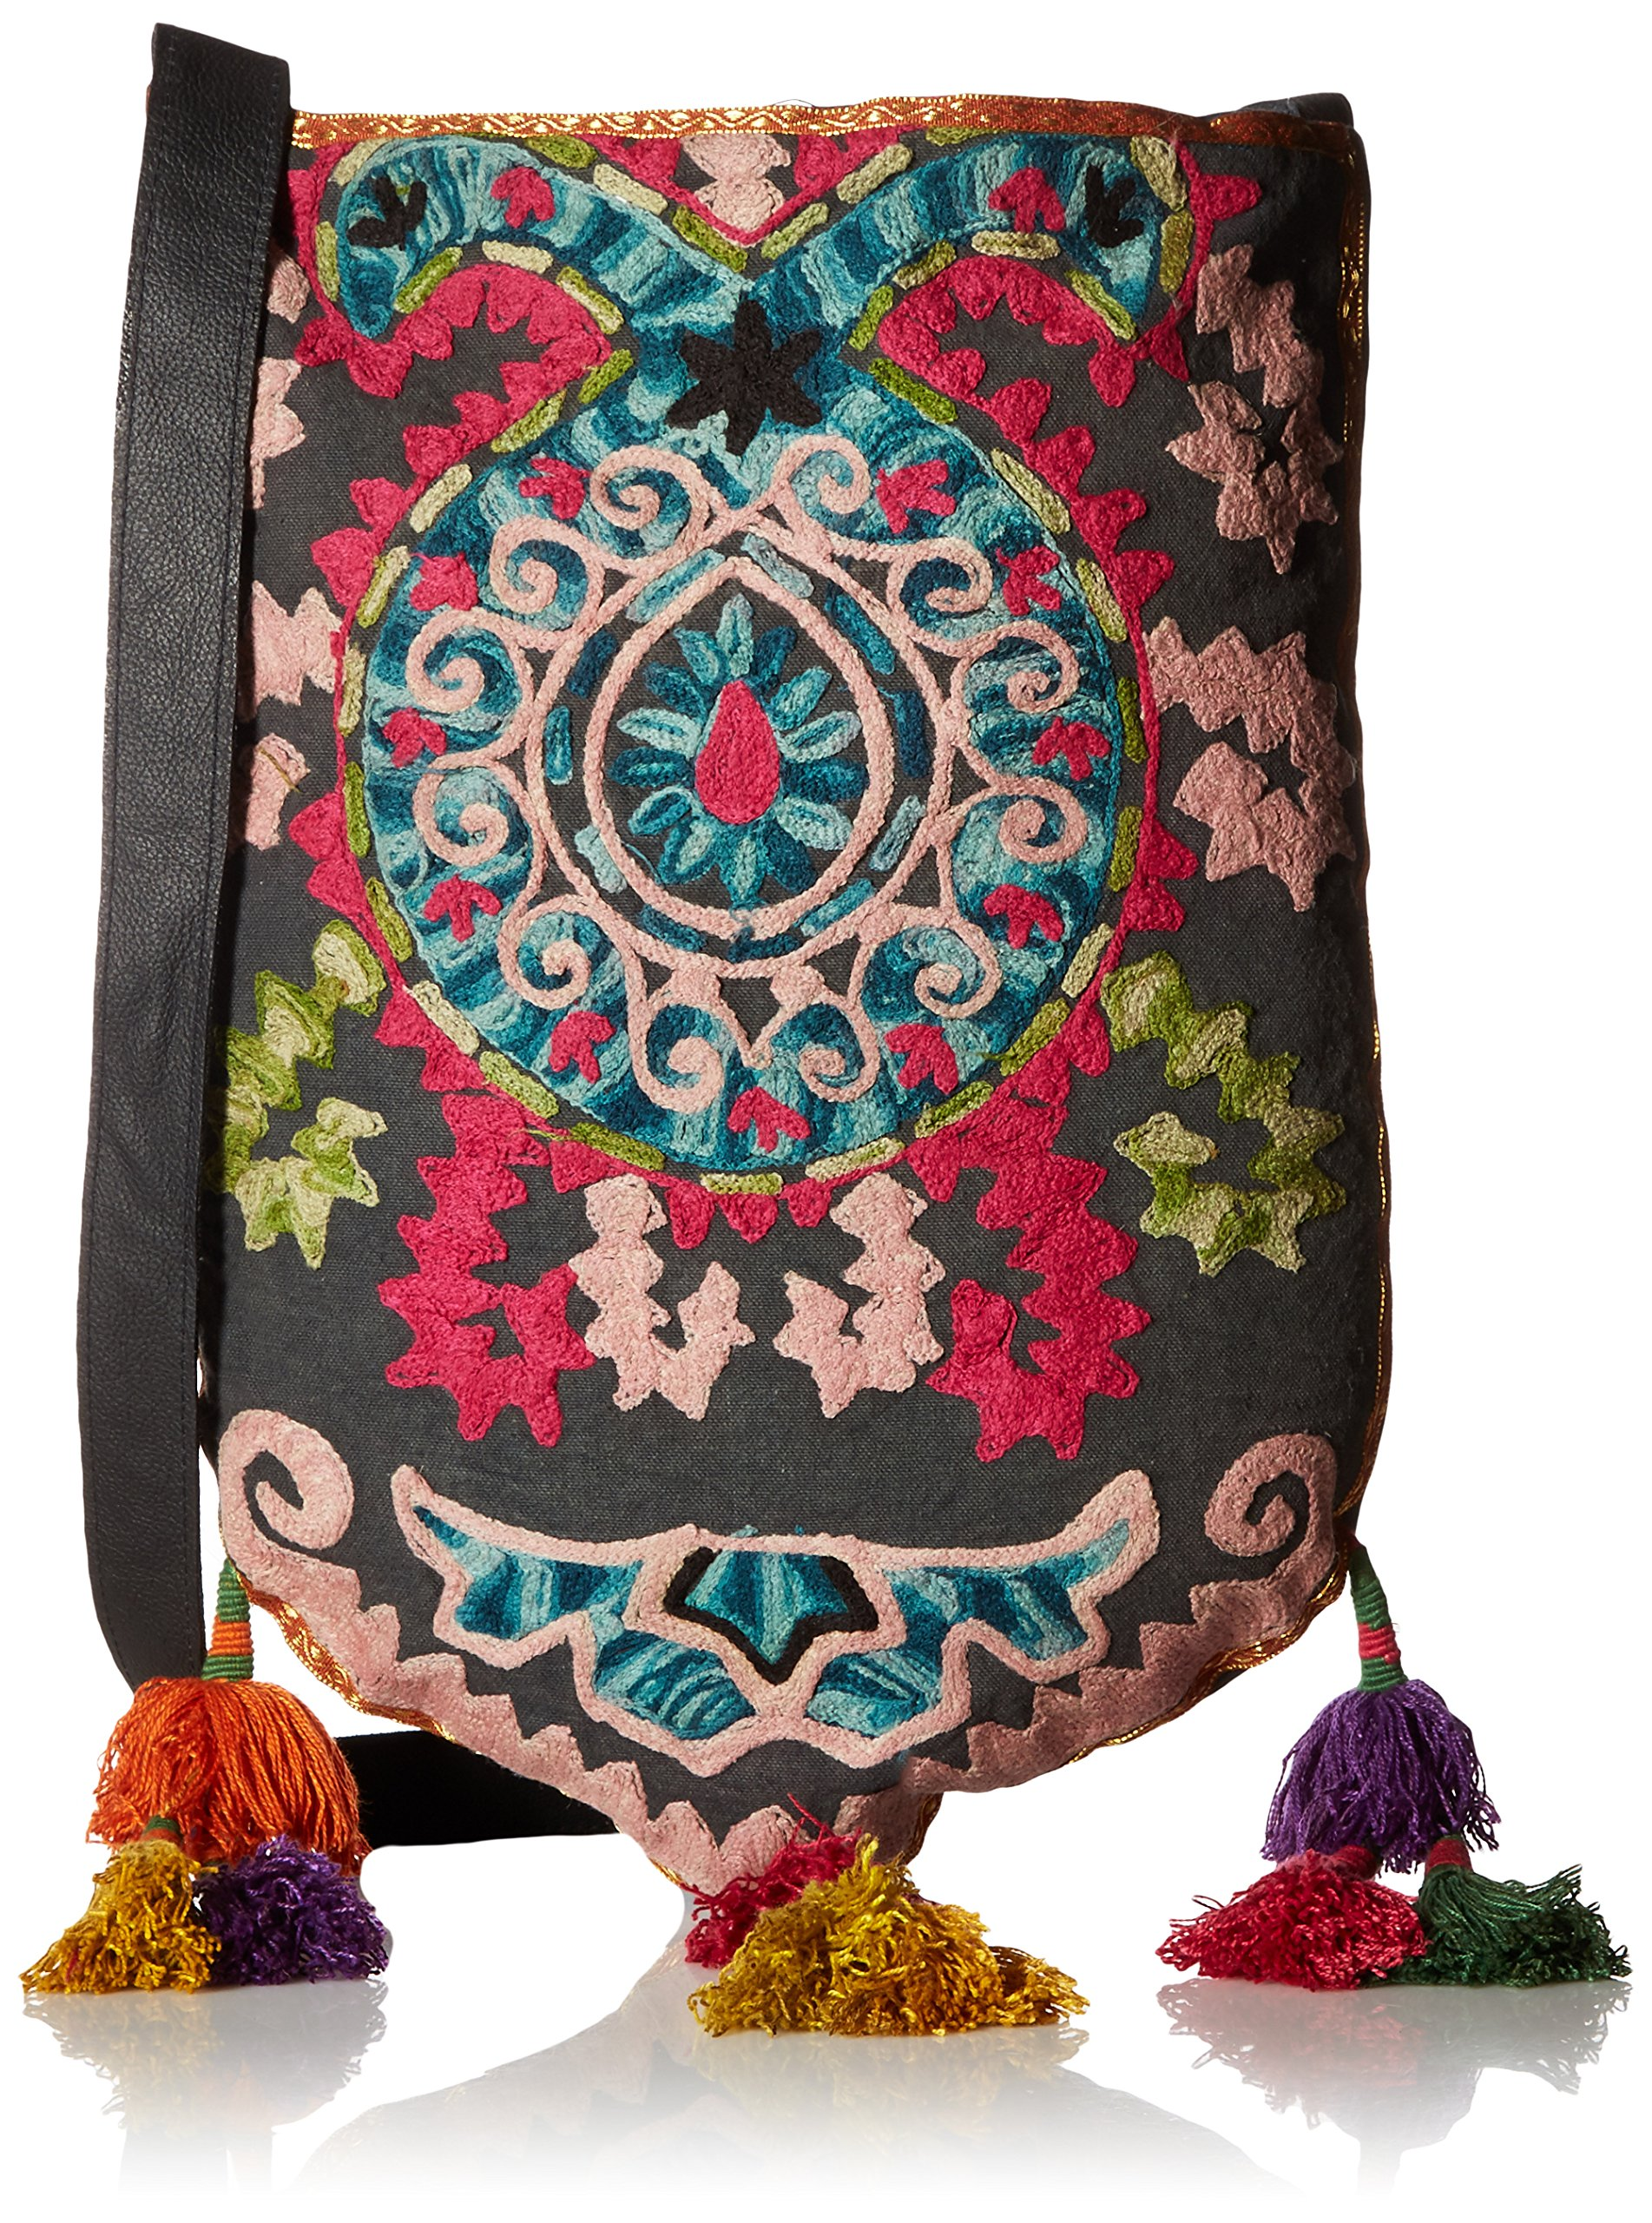 'ale by alessandra Women's Suzani Embroidered Tribal Bag With Tassels, Multi, One Size